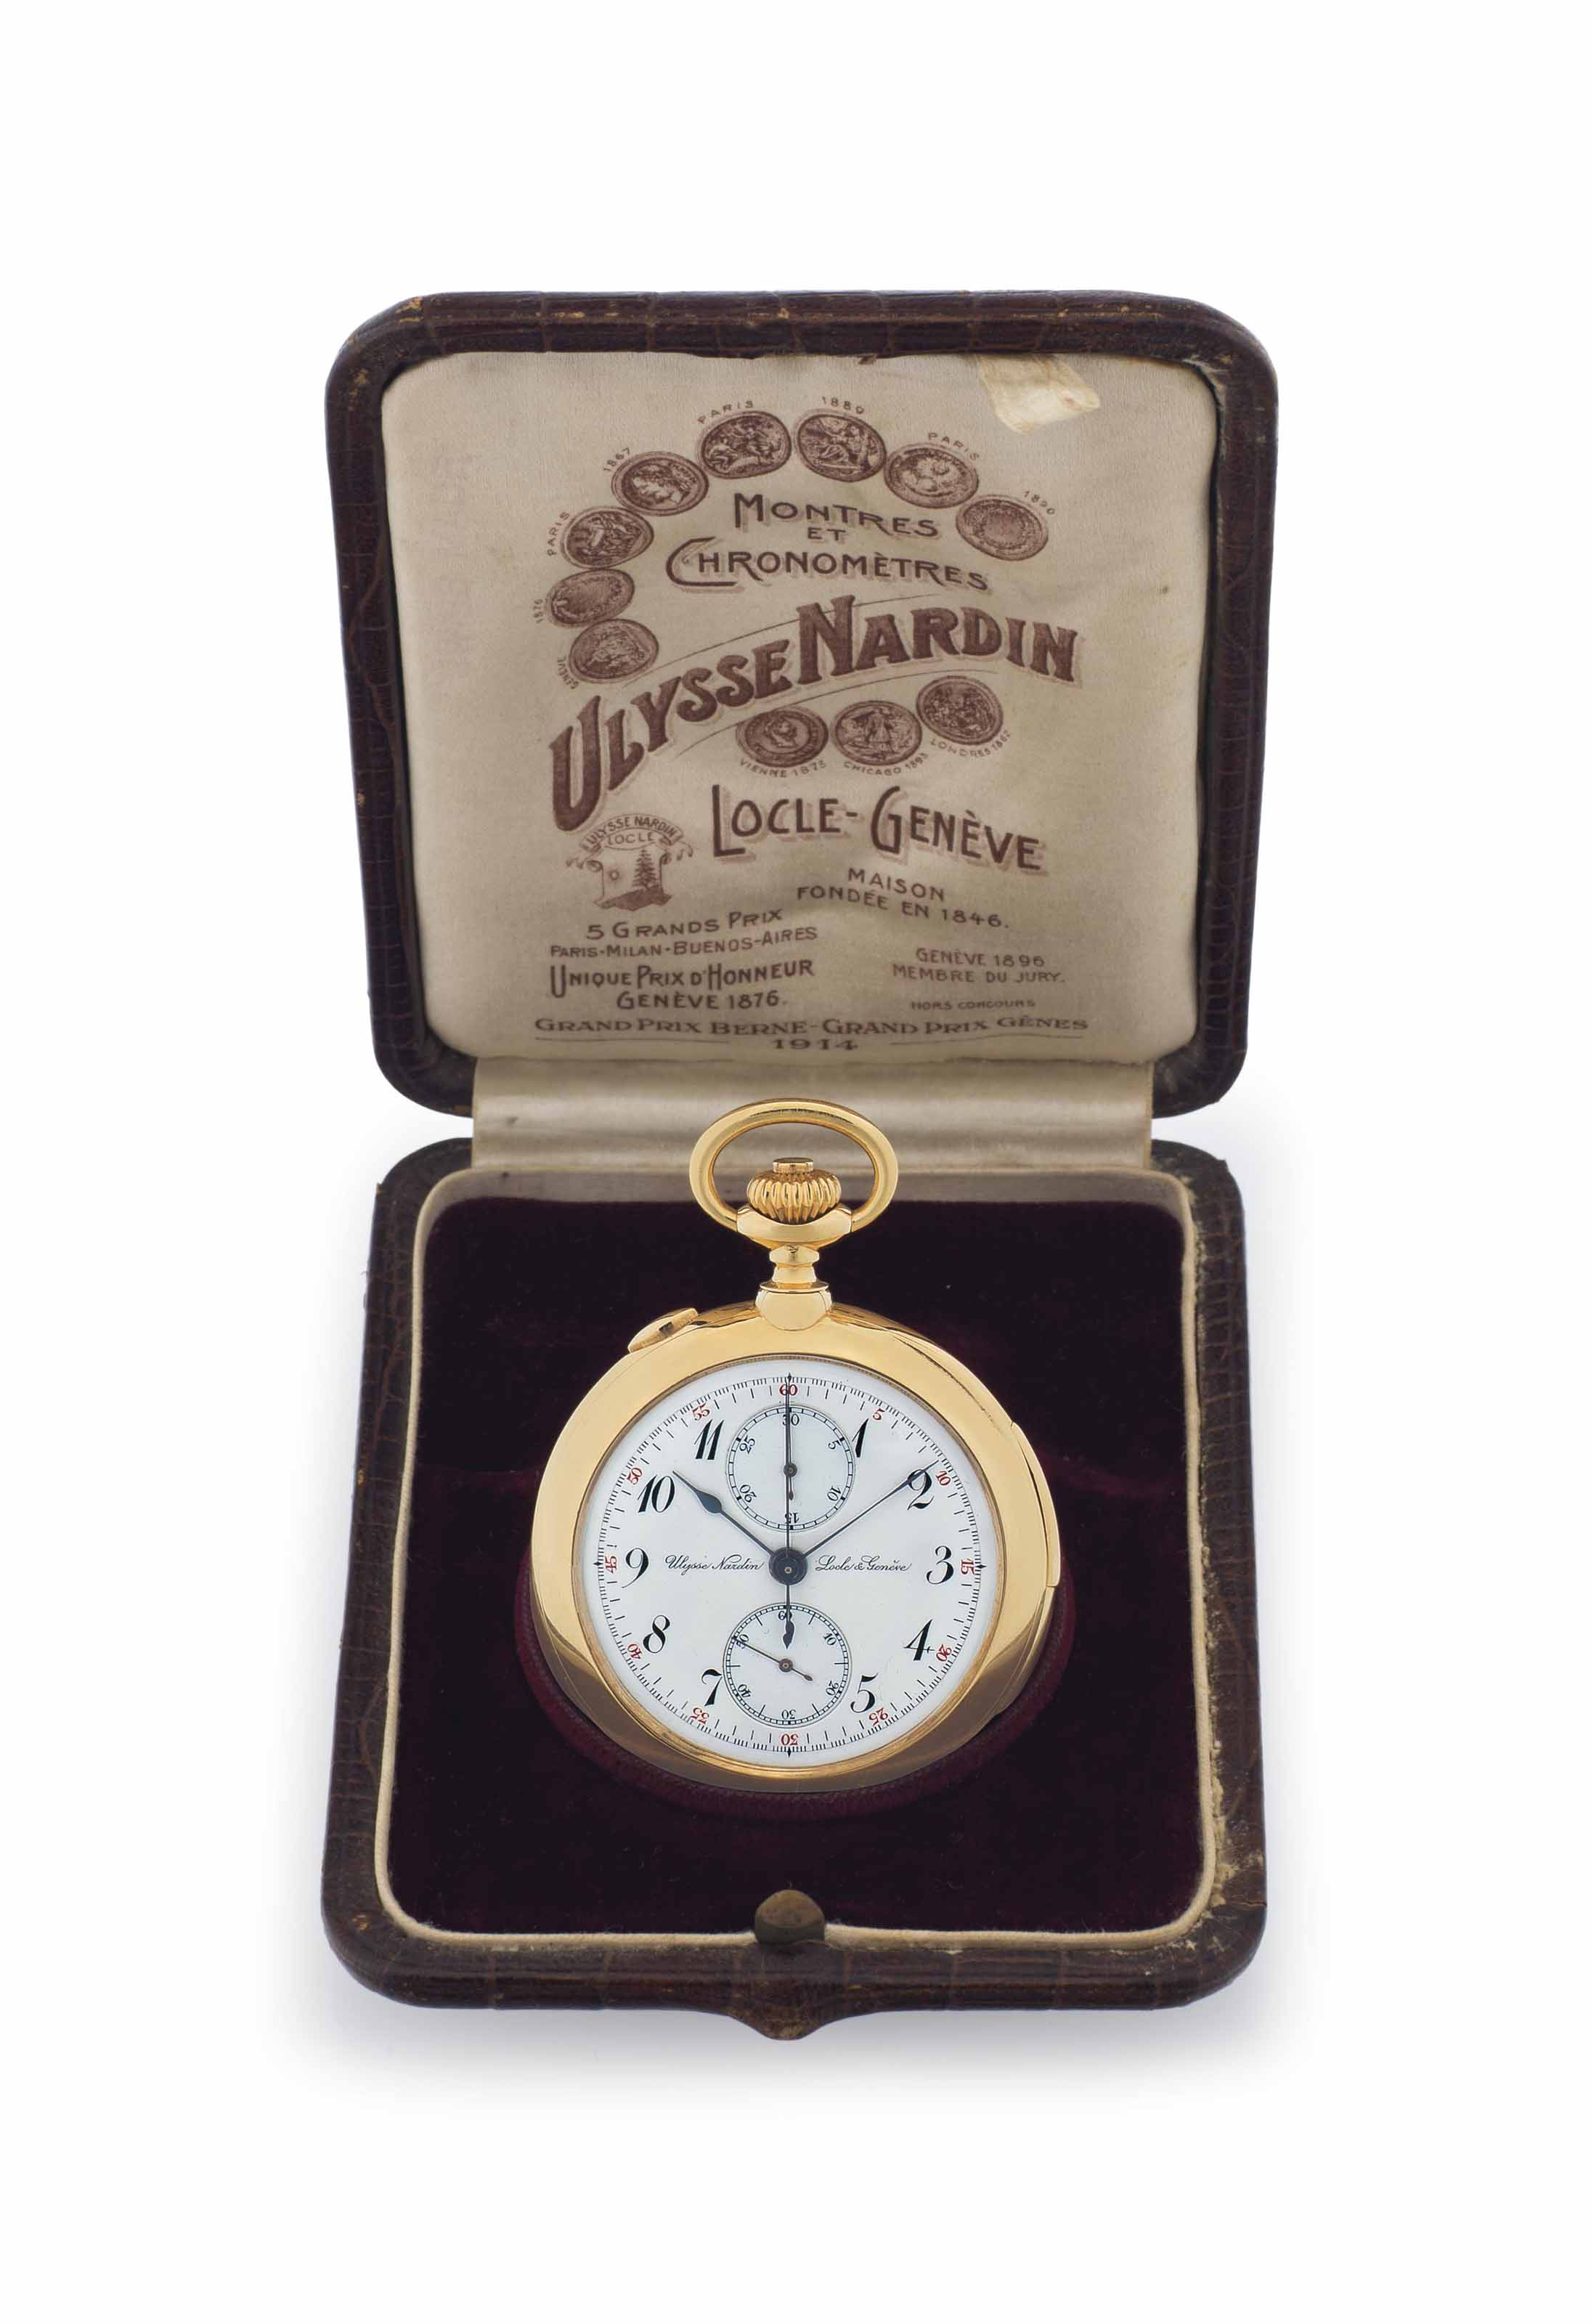 Ulysse Nardin. A Fine 18k Gold Openface Minute Repeating Split-Seconds Chronograph Lever Pocket Watch with Presentation Box